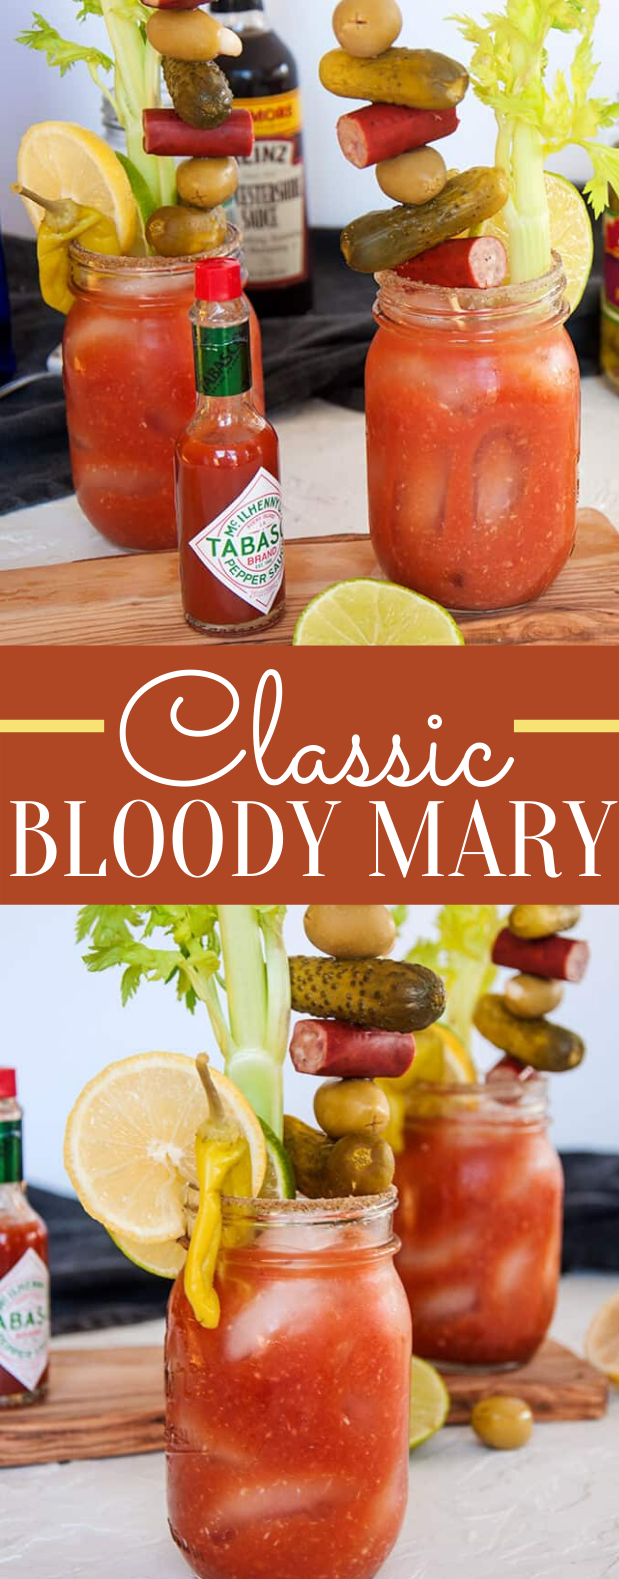 Classic Bloody Mary Recipe #cocktails #drinks #vodka #summerdrink #classicdrink